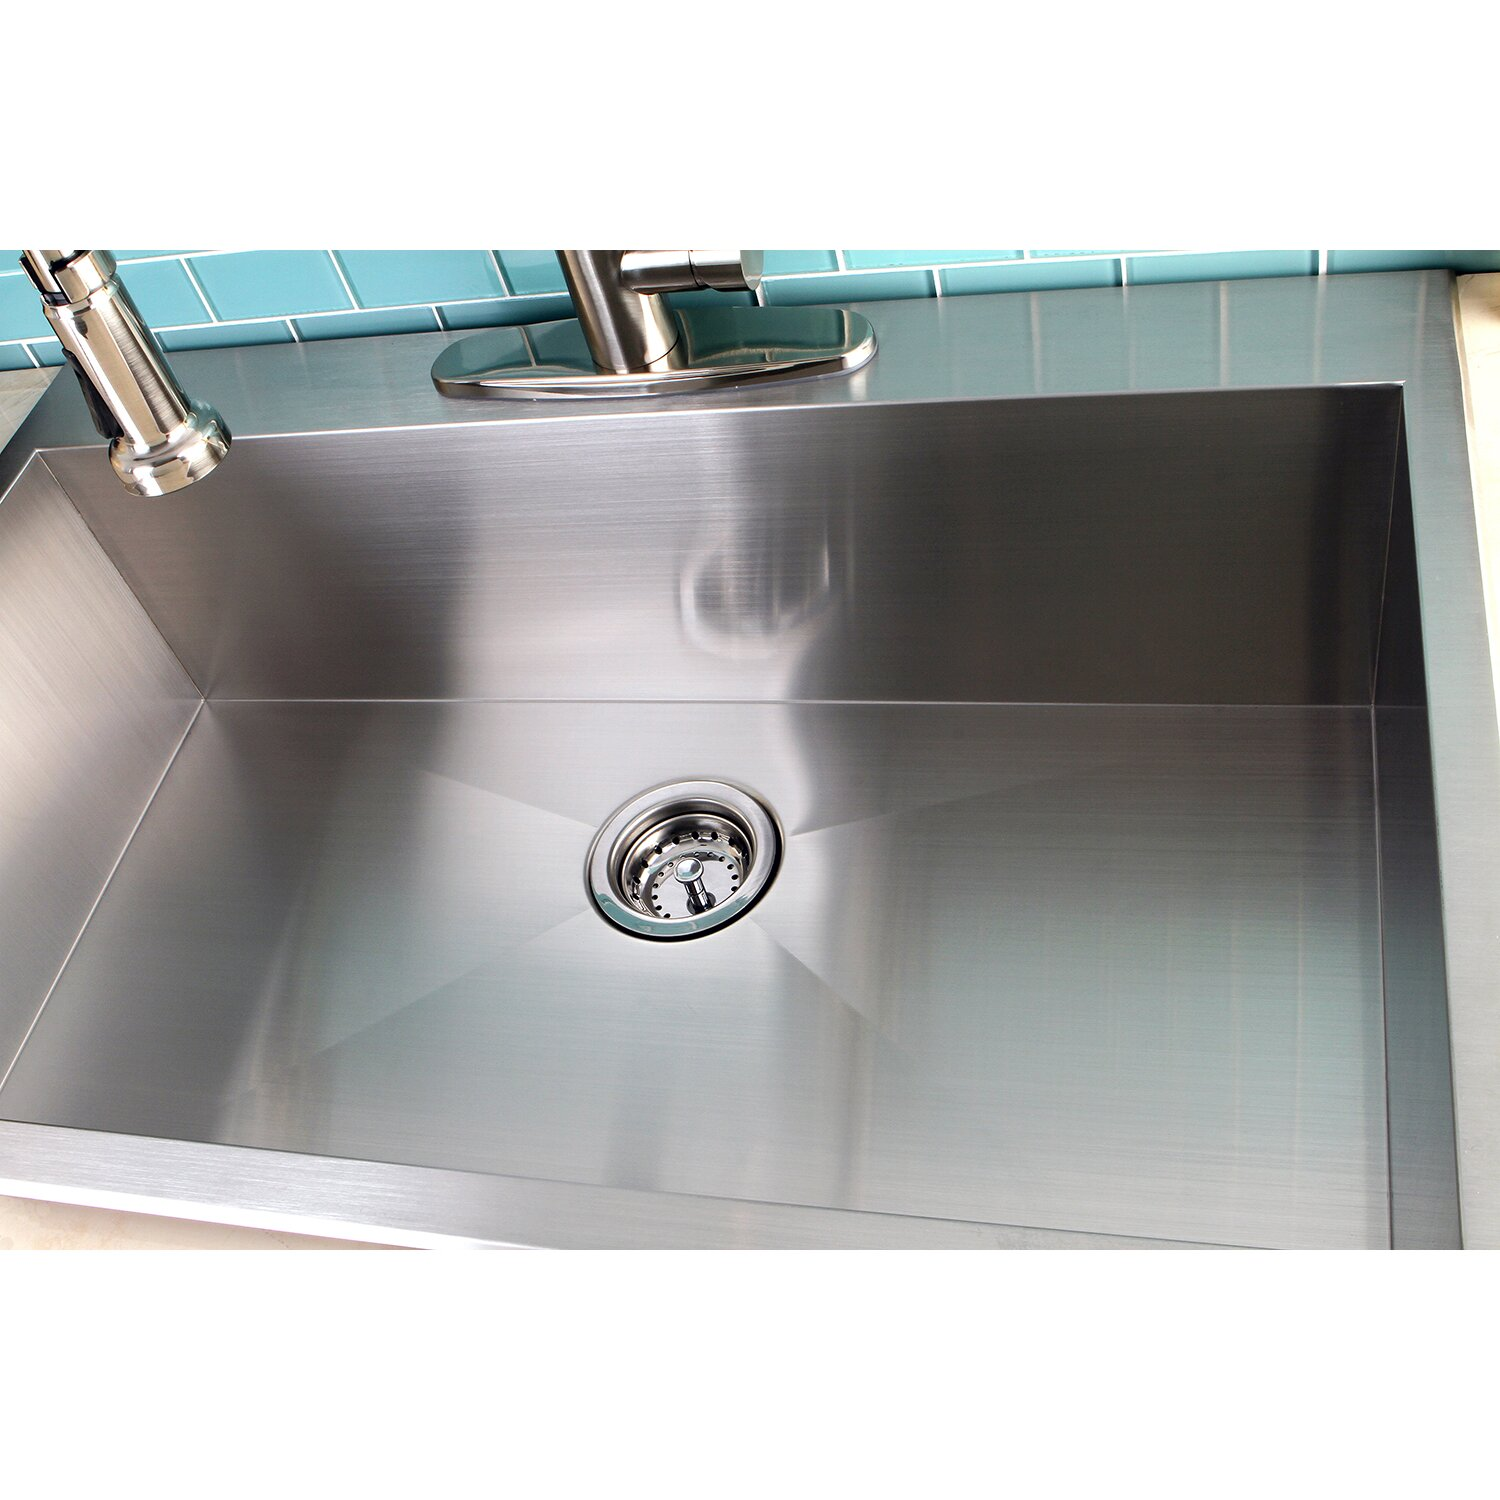 ordinary Single Basin Kitchen Sink 33 X 22 #7: ... Bowl Kitchen Sink. Kingston Brass Uptowne 33u0026quot; x 22u0026quot;  Self-Rimming Single ...